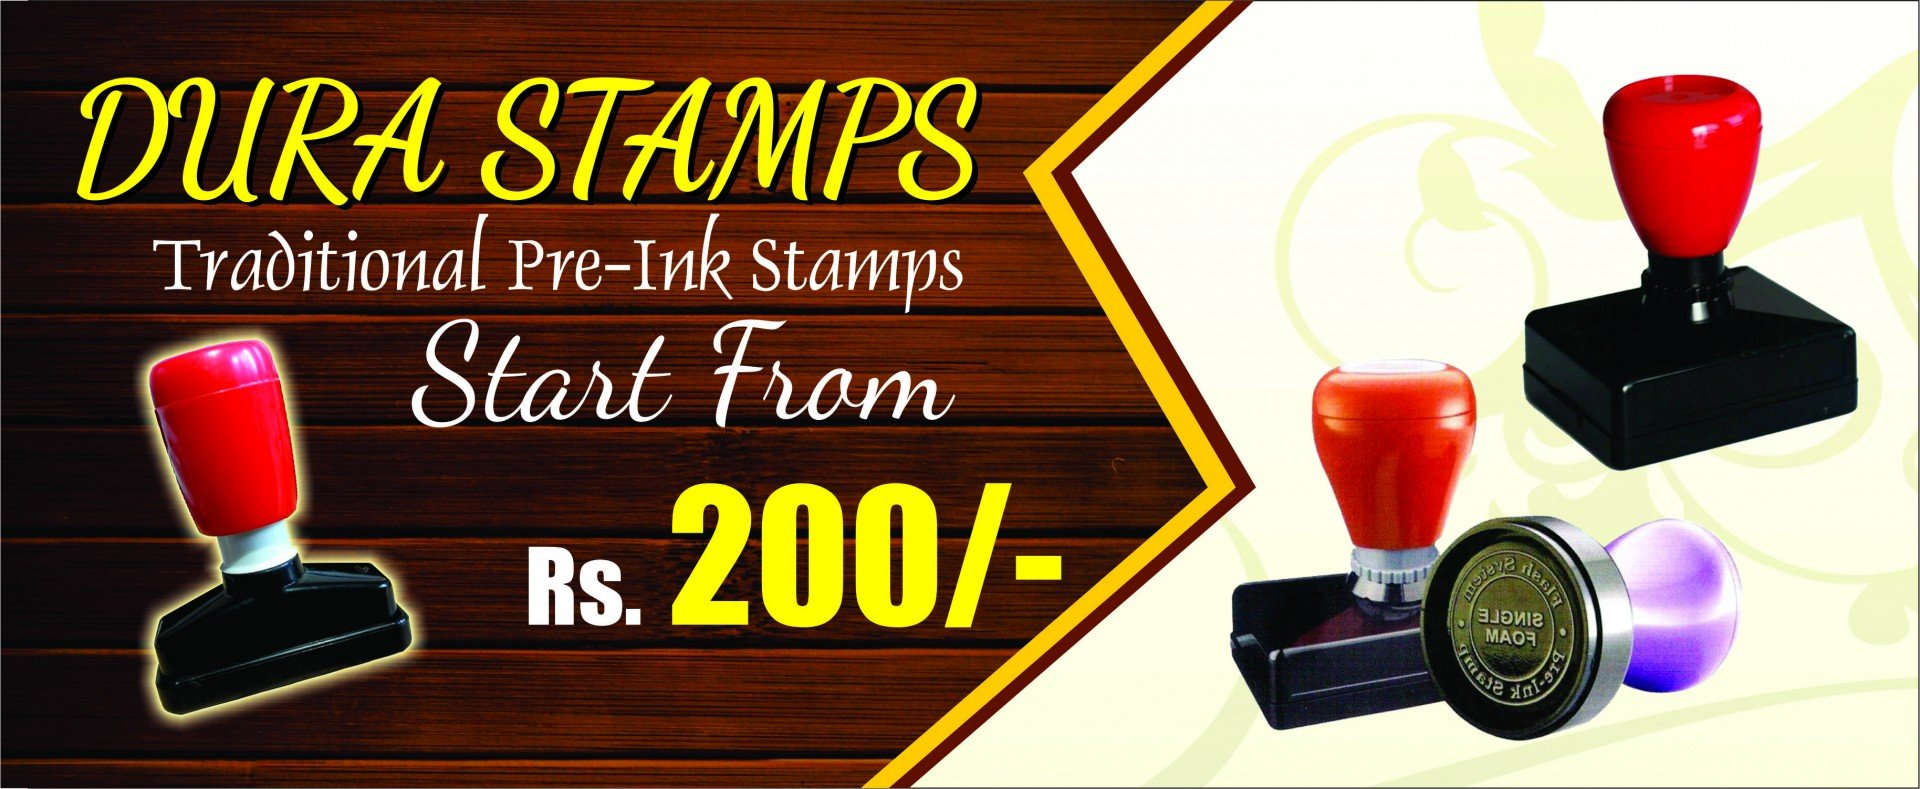 Dura Stamps